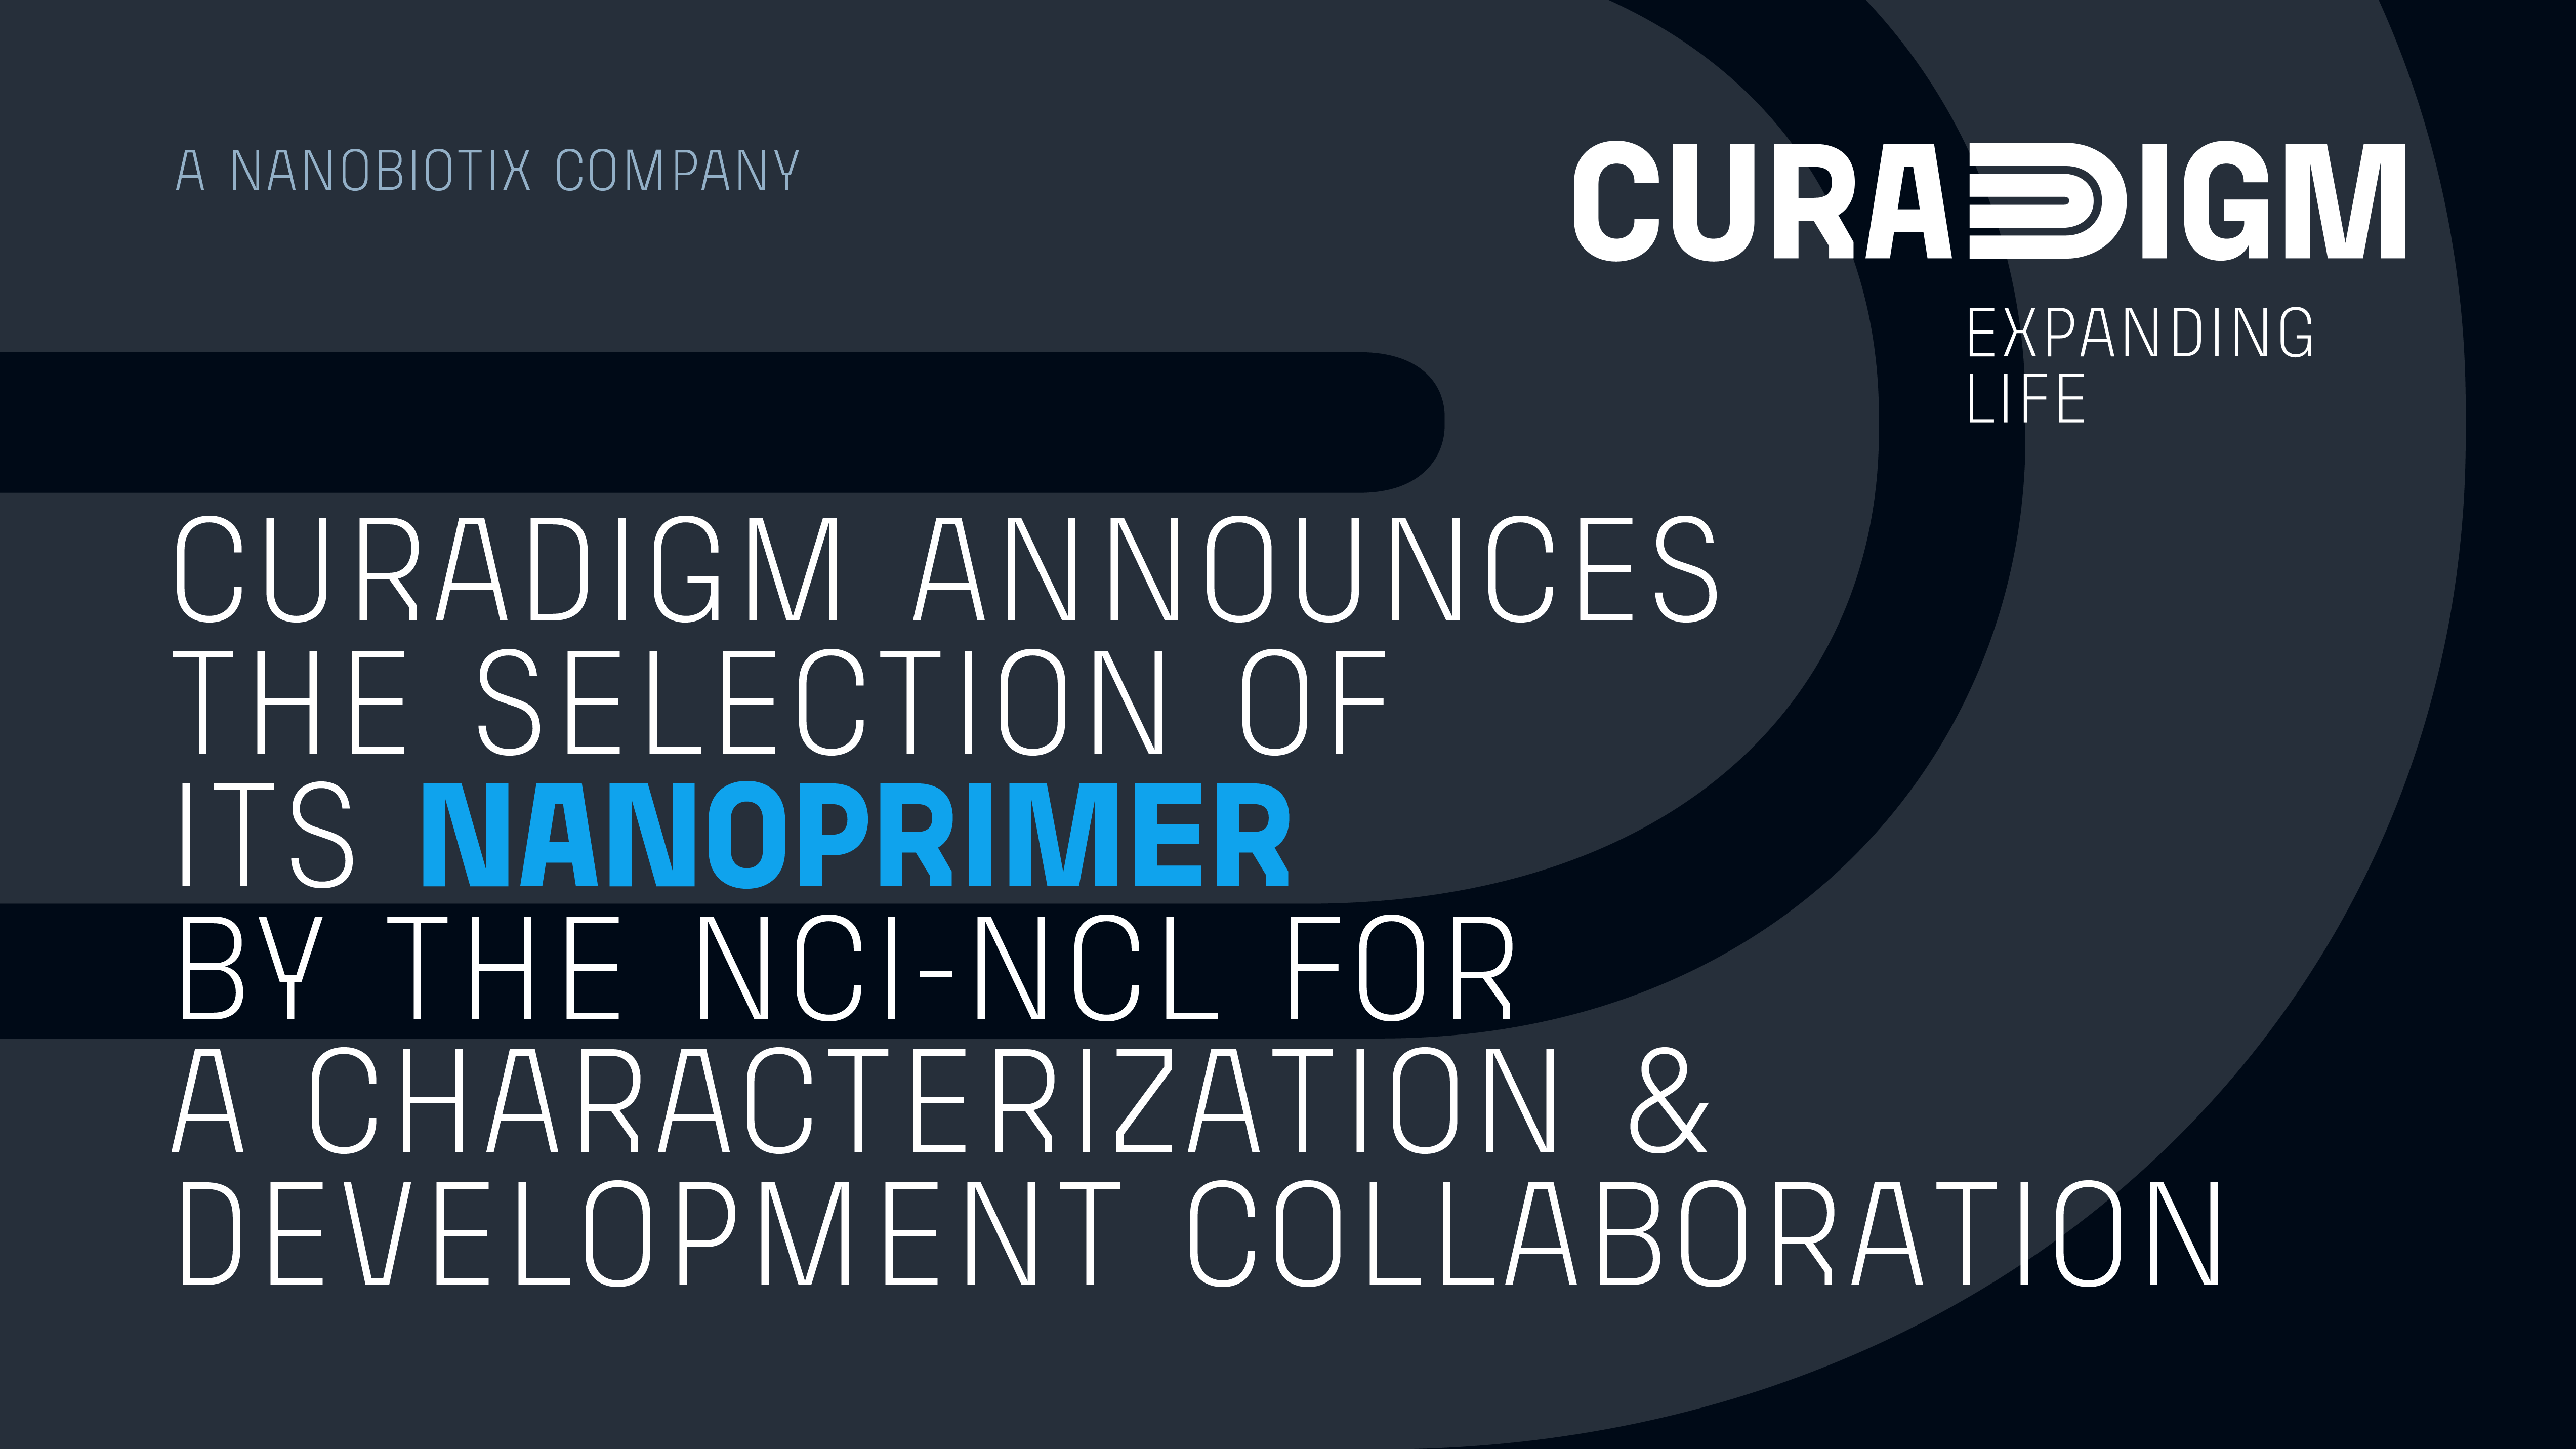 Curadigm announces the selection of its Nanoprimer technology by the National Cancer Institute for a characterization & development collaboration